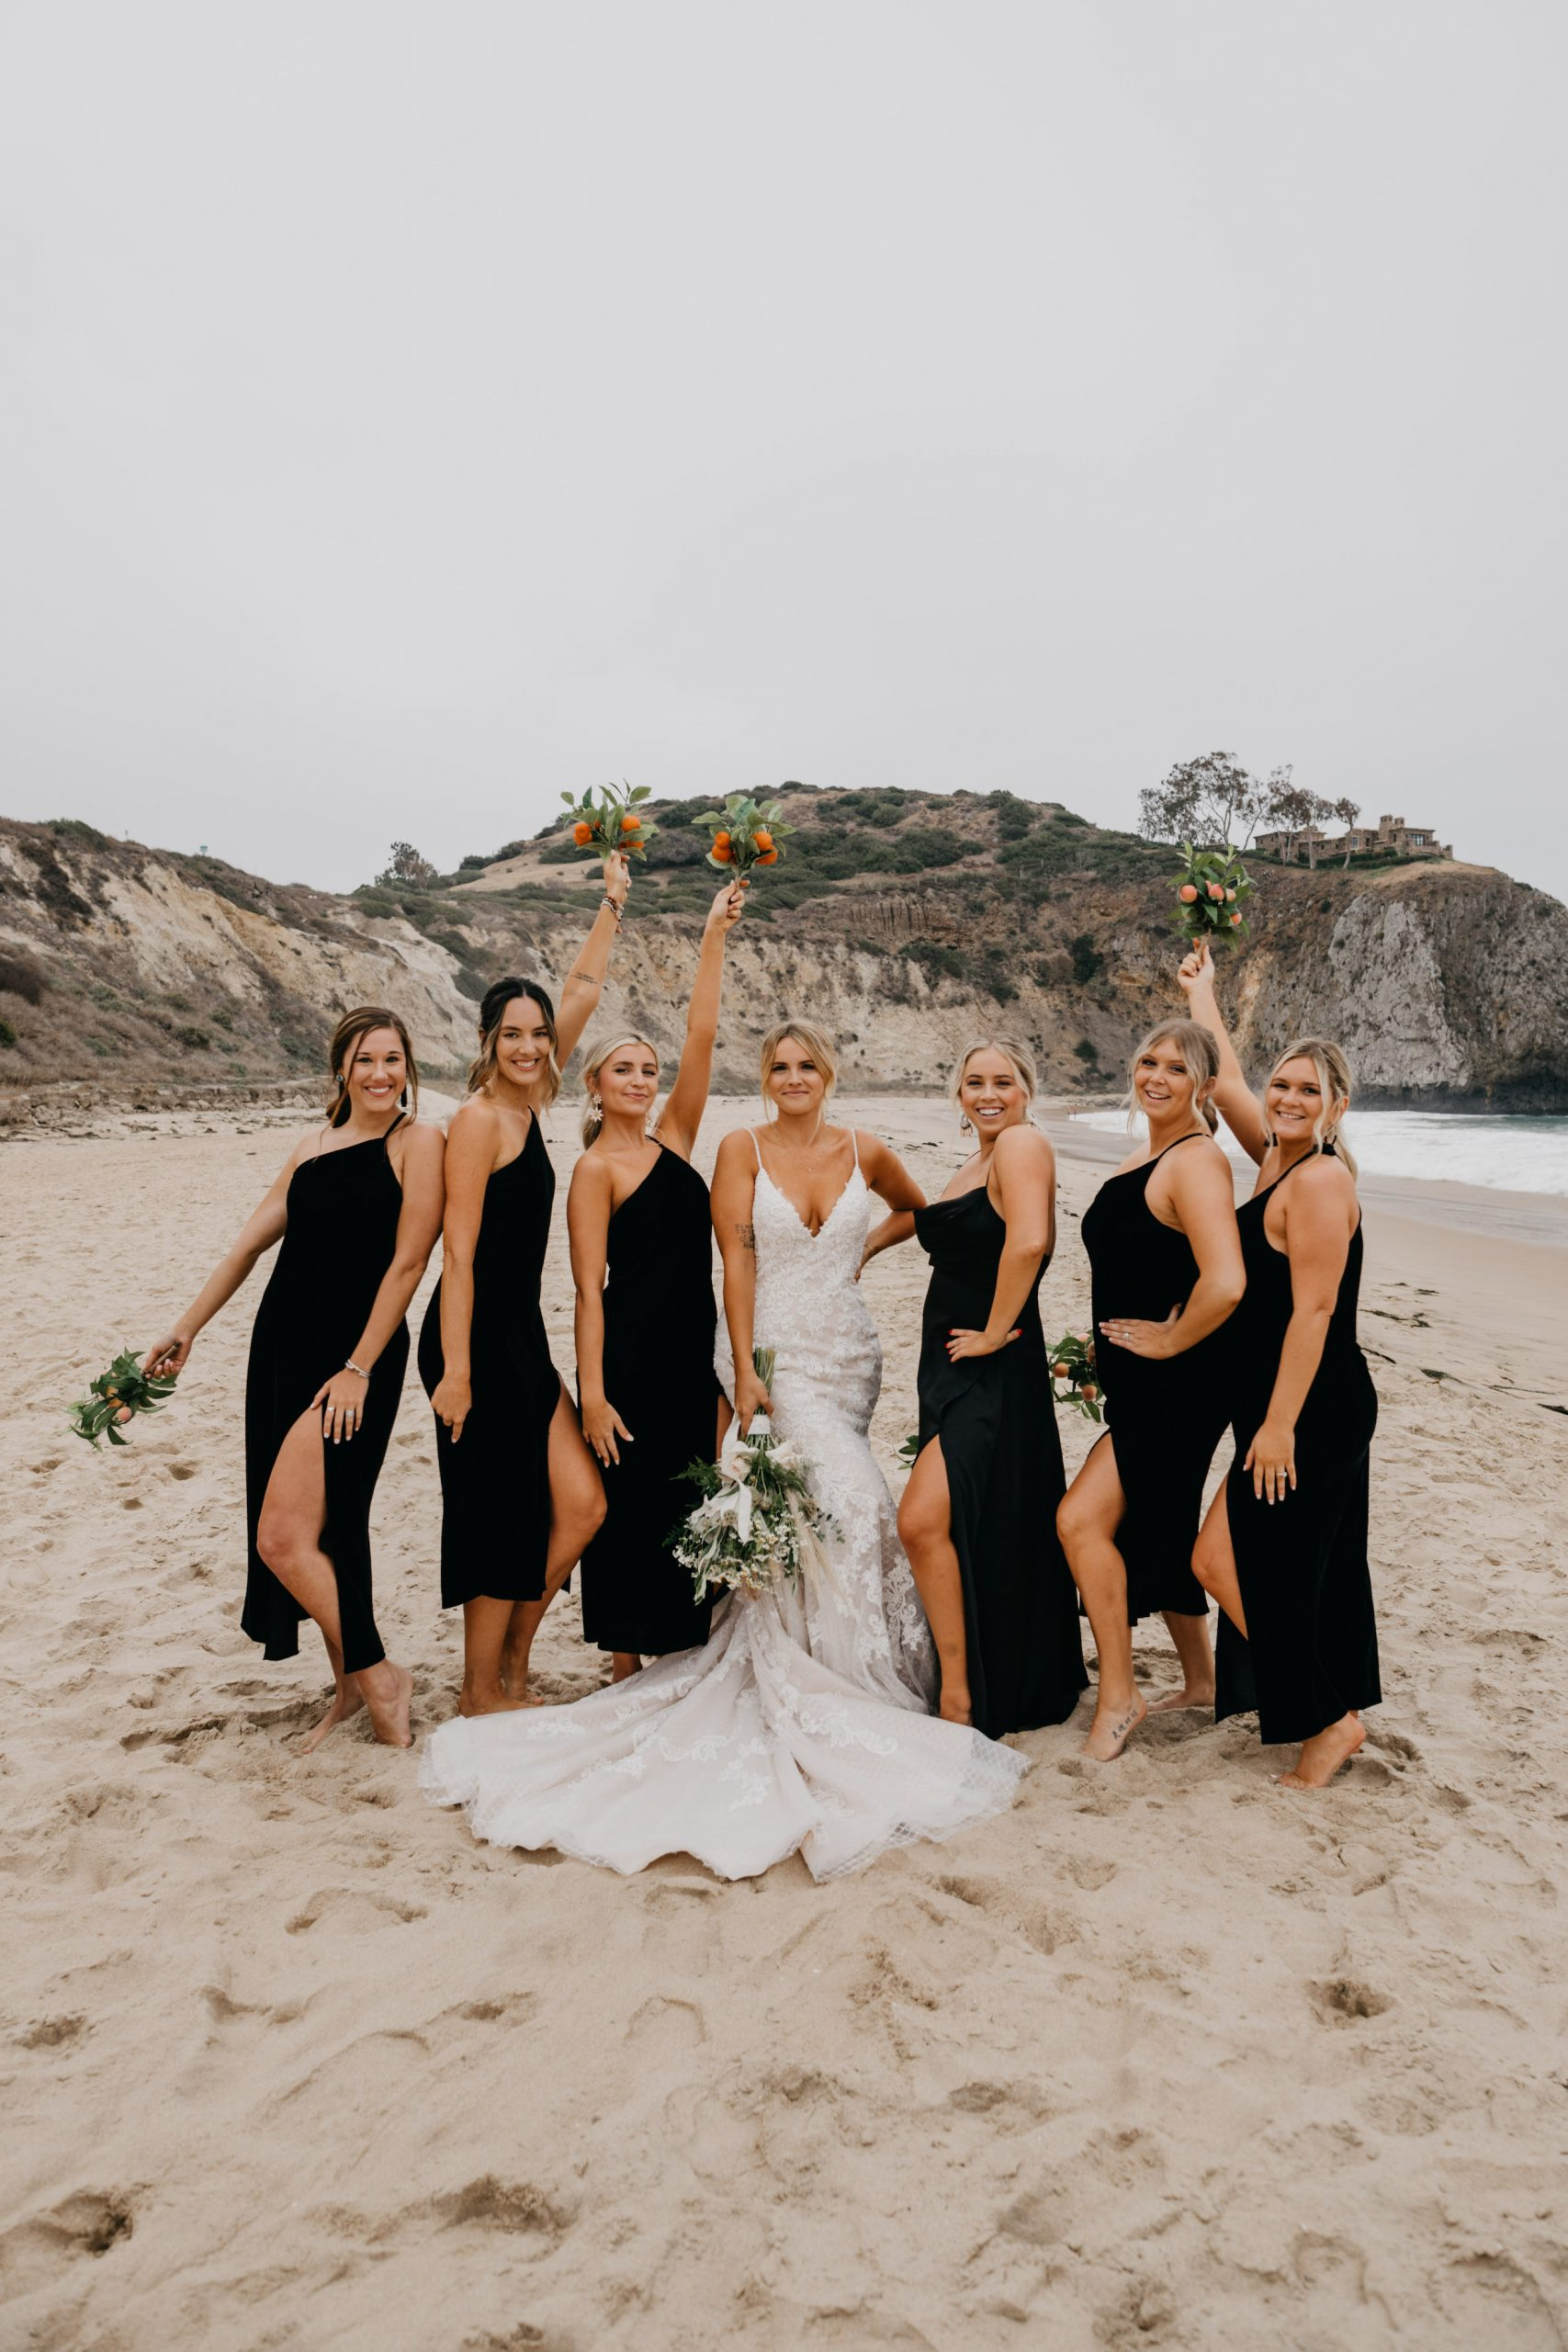 Bride and bridesmaids in Crystal Cove State Park Wedding in Laguna beach, image by Fatima Elreda Photo